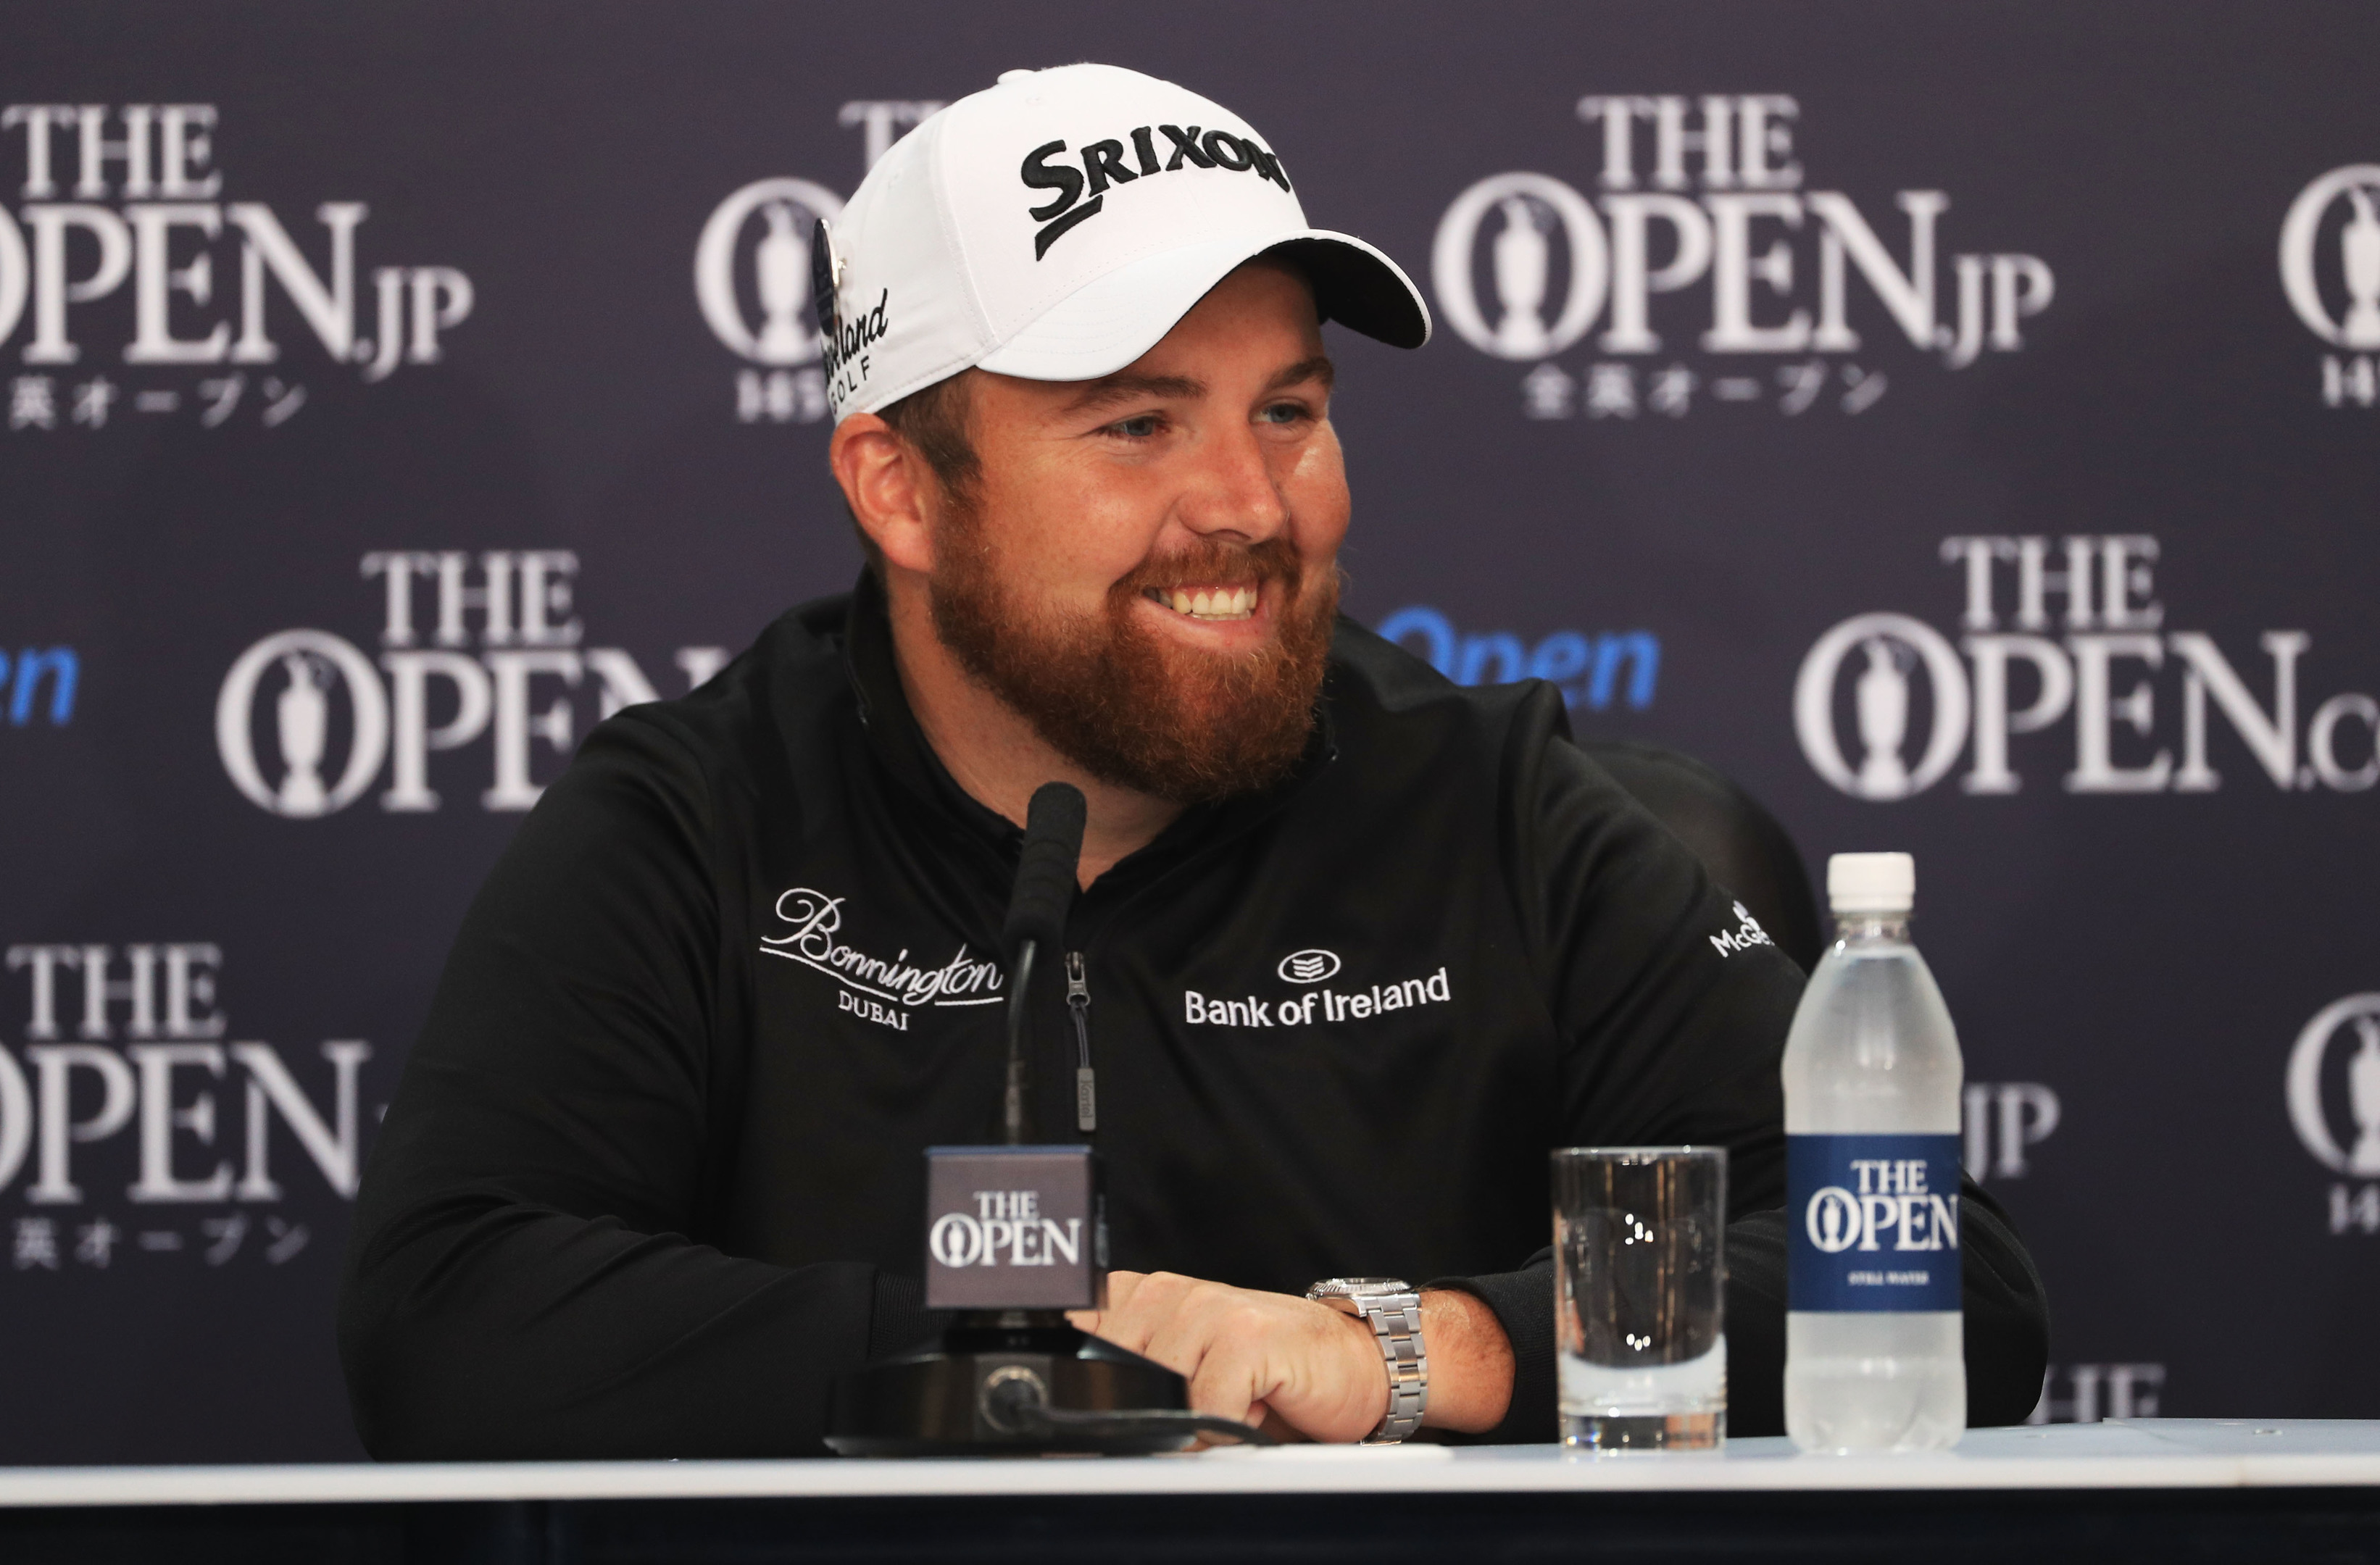 All smiles - Shane Lowry.